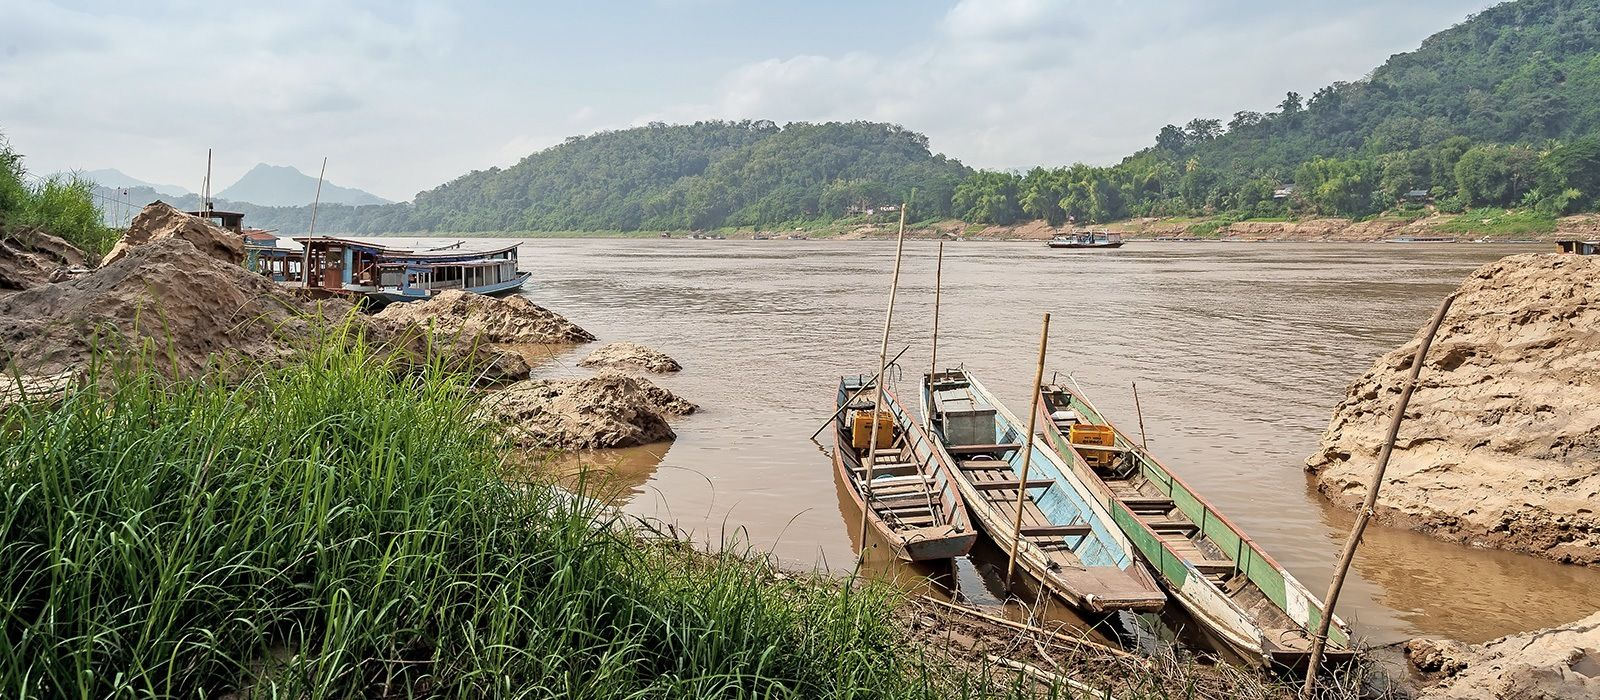 Live Laos: From Monks to Mekong | Tours & Trips with ...